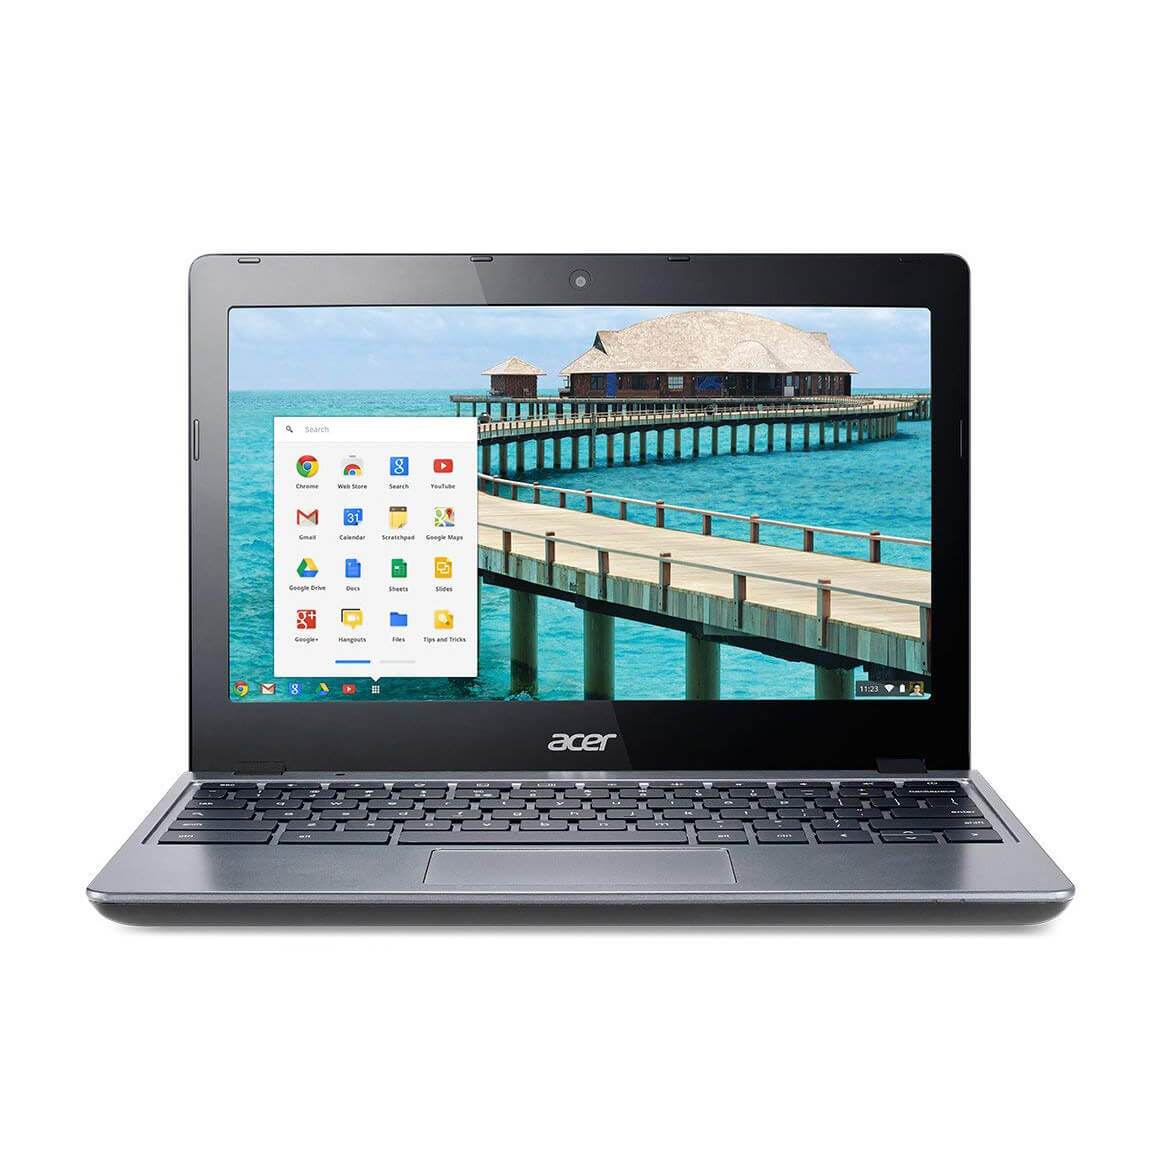 "Refurbished Acer C720-2103 11.6"" LED Chromebook Intel Celeron 1.4Ghz Dual Core 2GB 16GB SSD - FLJ CORPORATIONS"